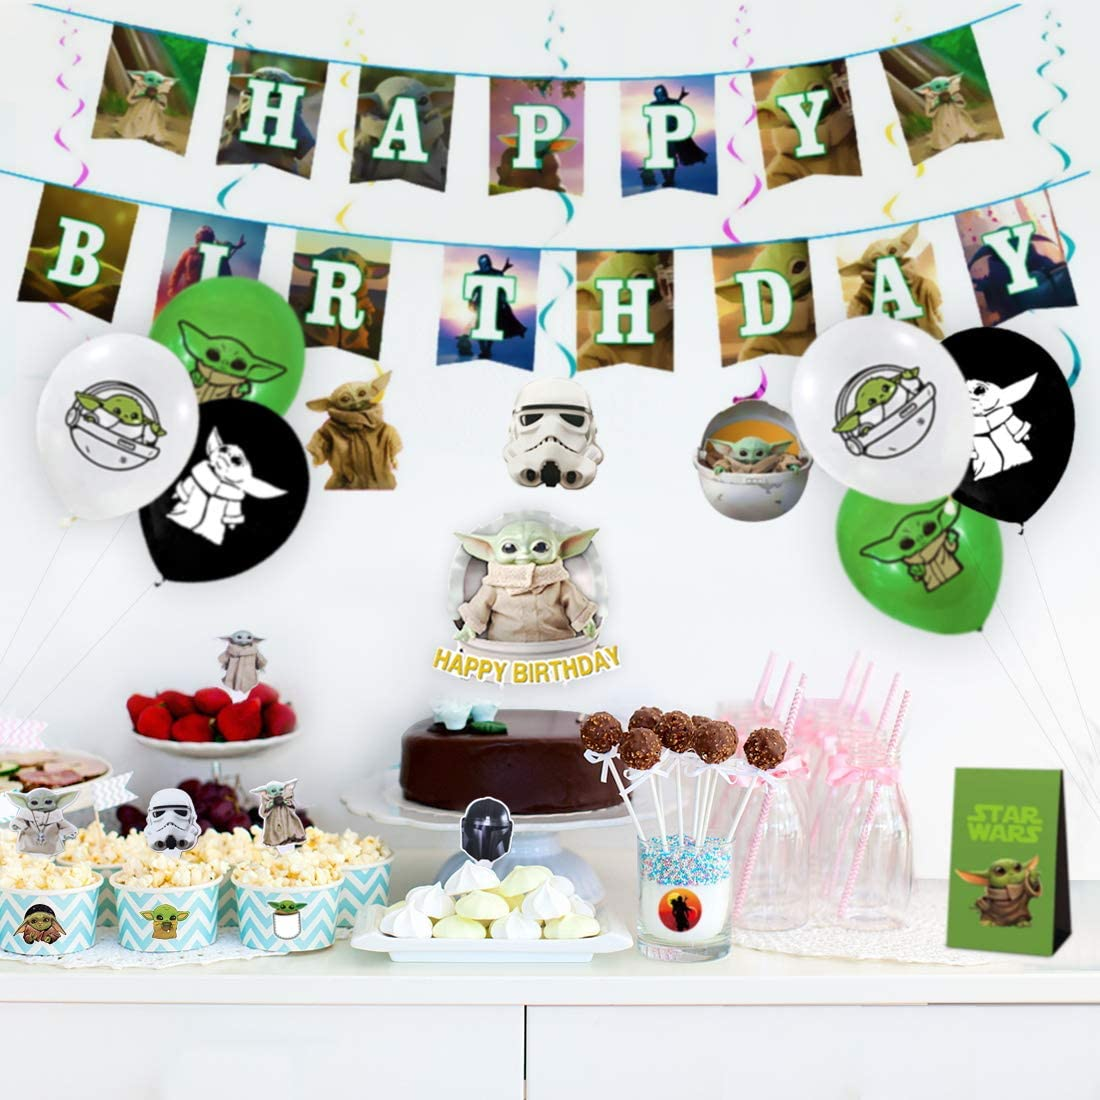 lanyard,candy bag,Hanging Swirls Balloons for Party Decorations Cake/Topper Baby Yoda Party supplies Set The Mandalorian/birthday decorations for Star War Fans with Happy Birthday Banner stickers,Cupcake/Toppers